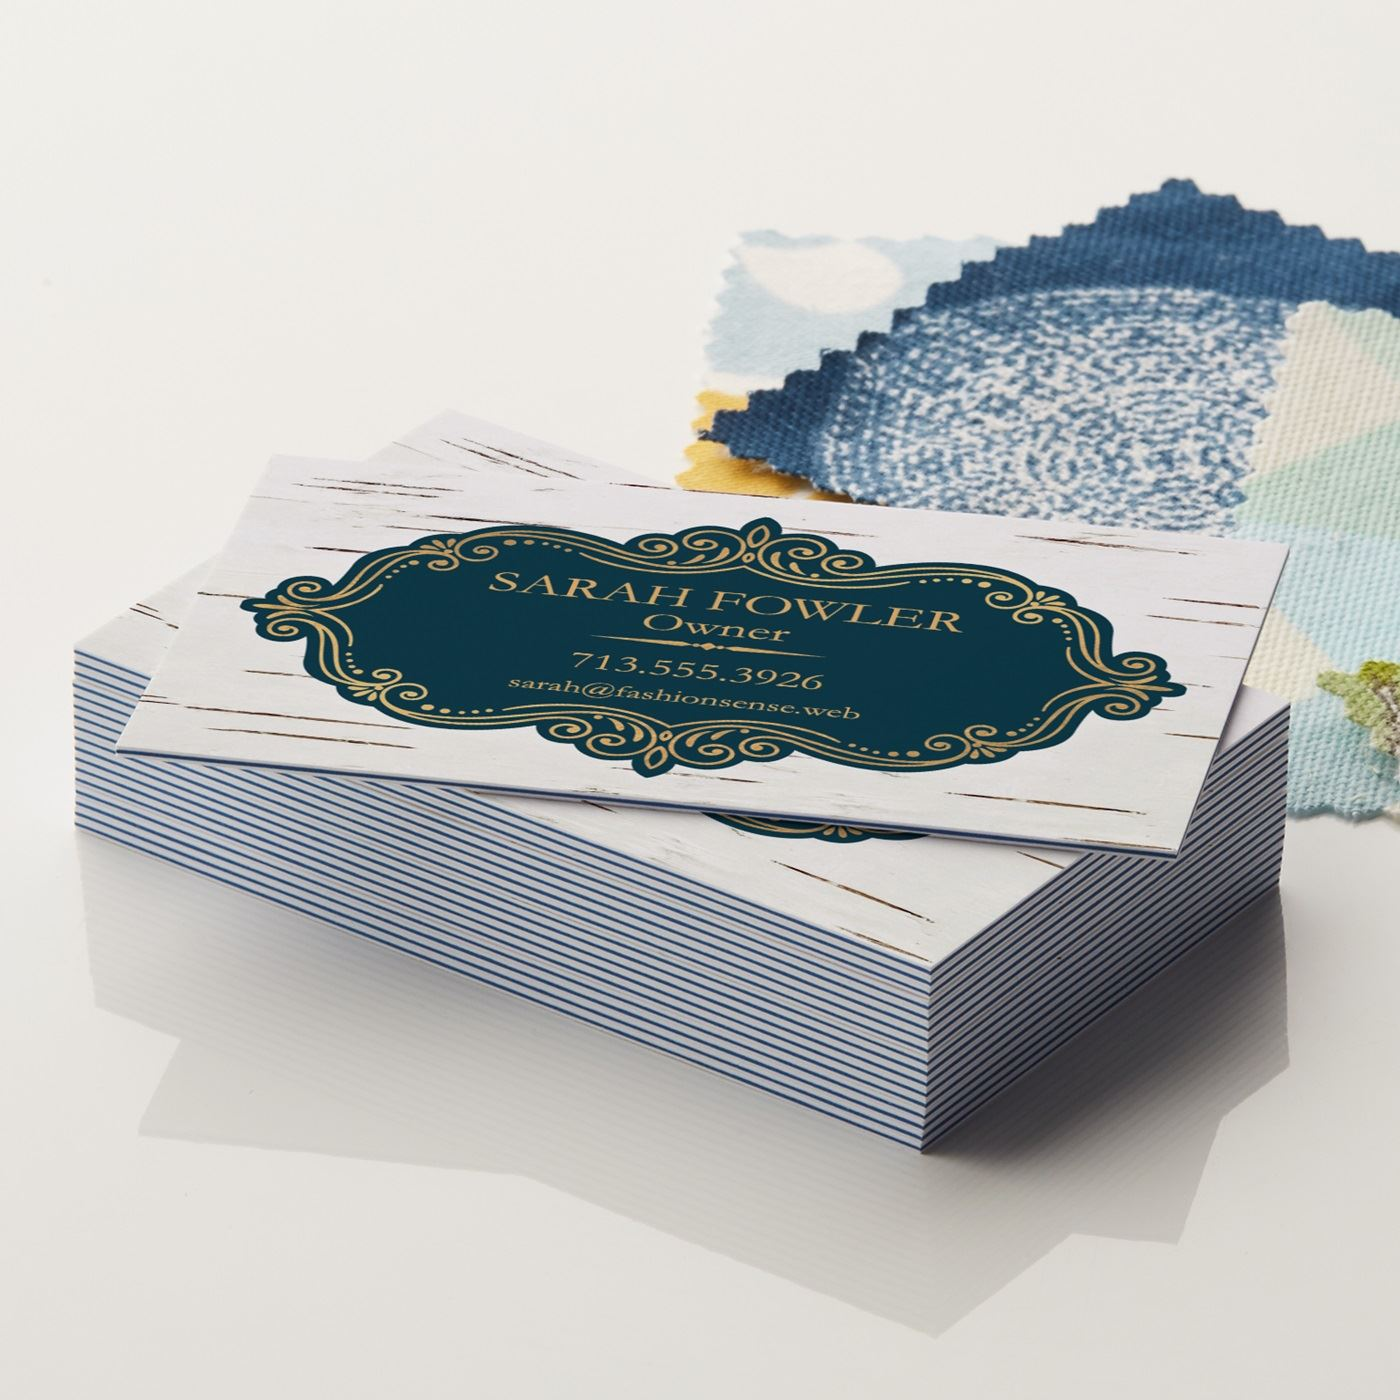 Colorfill business cards